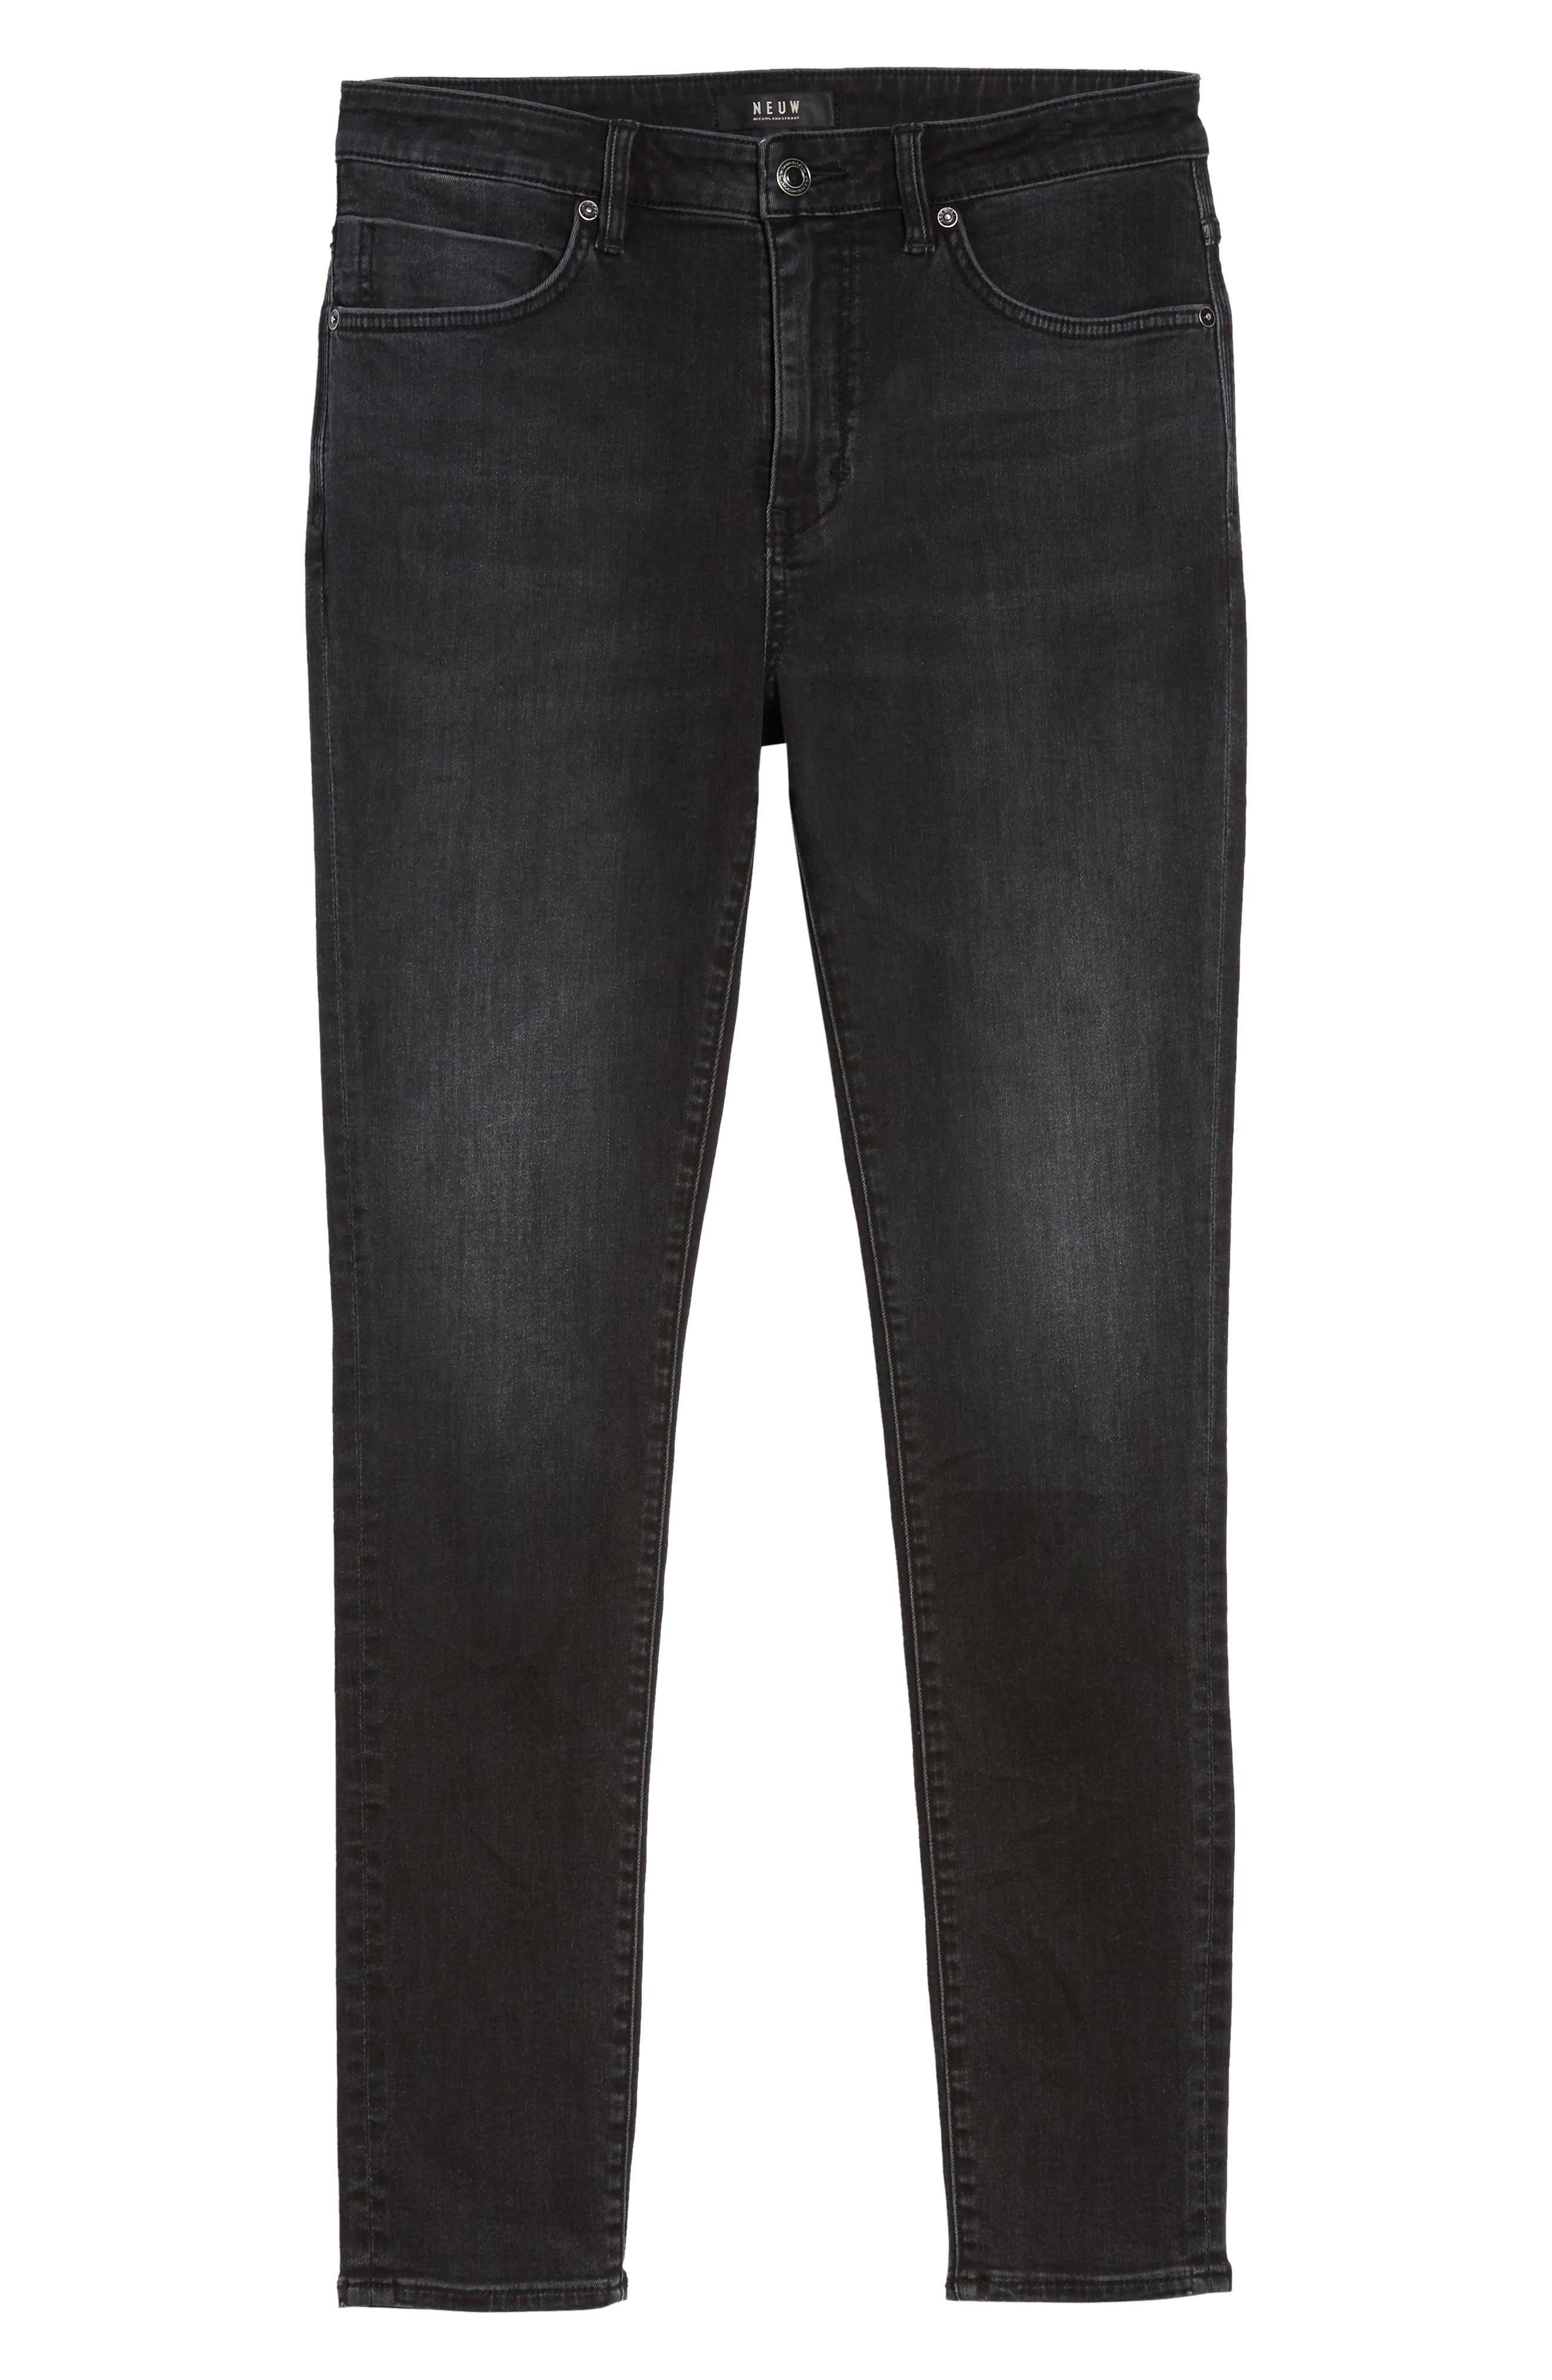 Iggy Skinny Fit Jeans,                             Alternate thumbnail 6, color,                             Wolfgang